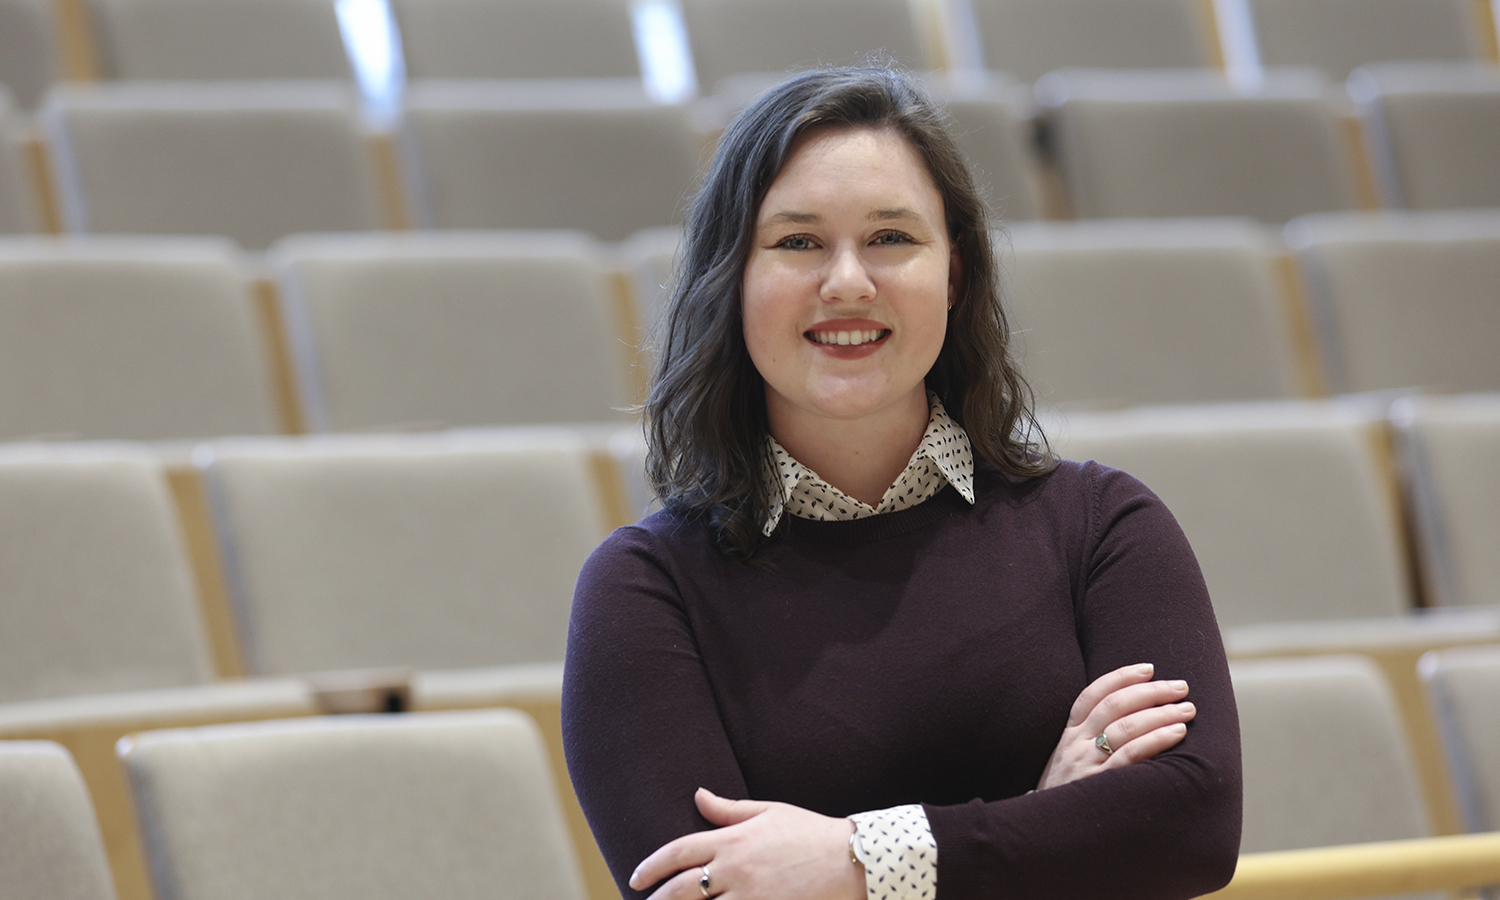 Elena Parkins '18 poses for a photo in Froelich Hall of the Gearan Center for the Performing Arts. Parkins completed her Honors study in choral conducting during the 2017-2018 academic year and recently moved to Rochester, NY to pursue research in the field of child psychology.